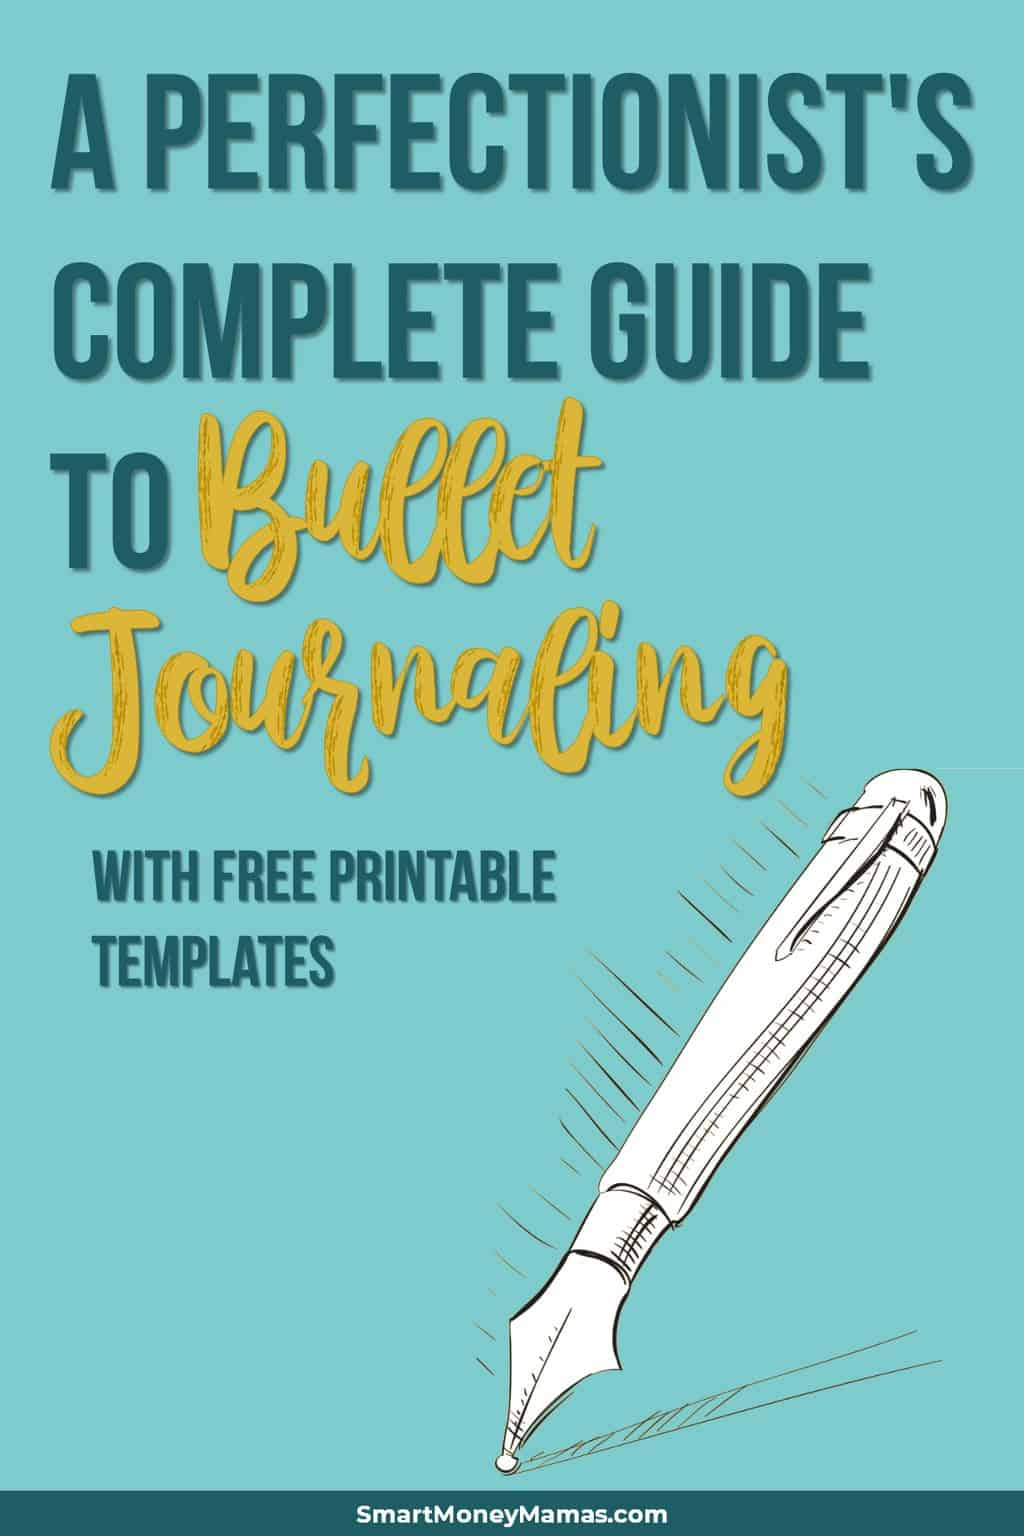 How to start a bullet journal for perfectionists and busy parents | Bullet journal tips for beginners | Bullet journal layout ideas | Free bullet journal inserts for ring planner #bulletjournal #bujo #perfectionist #freeprintables #printables